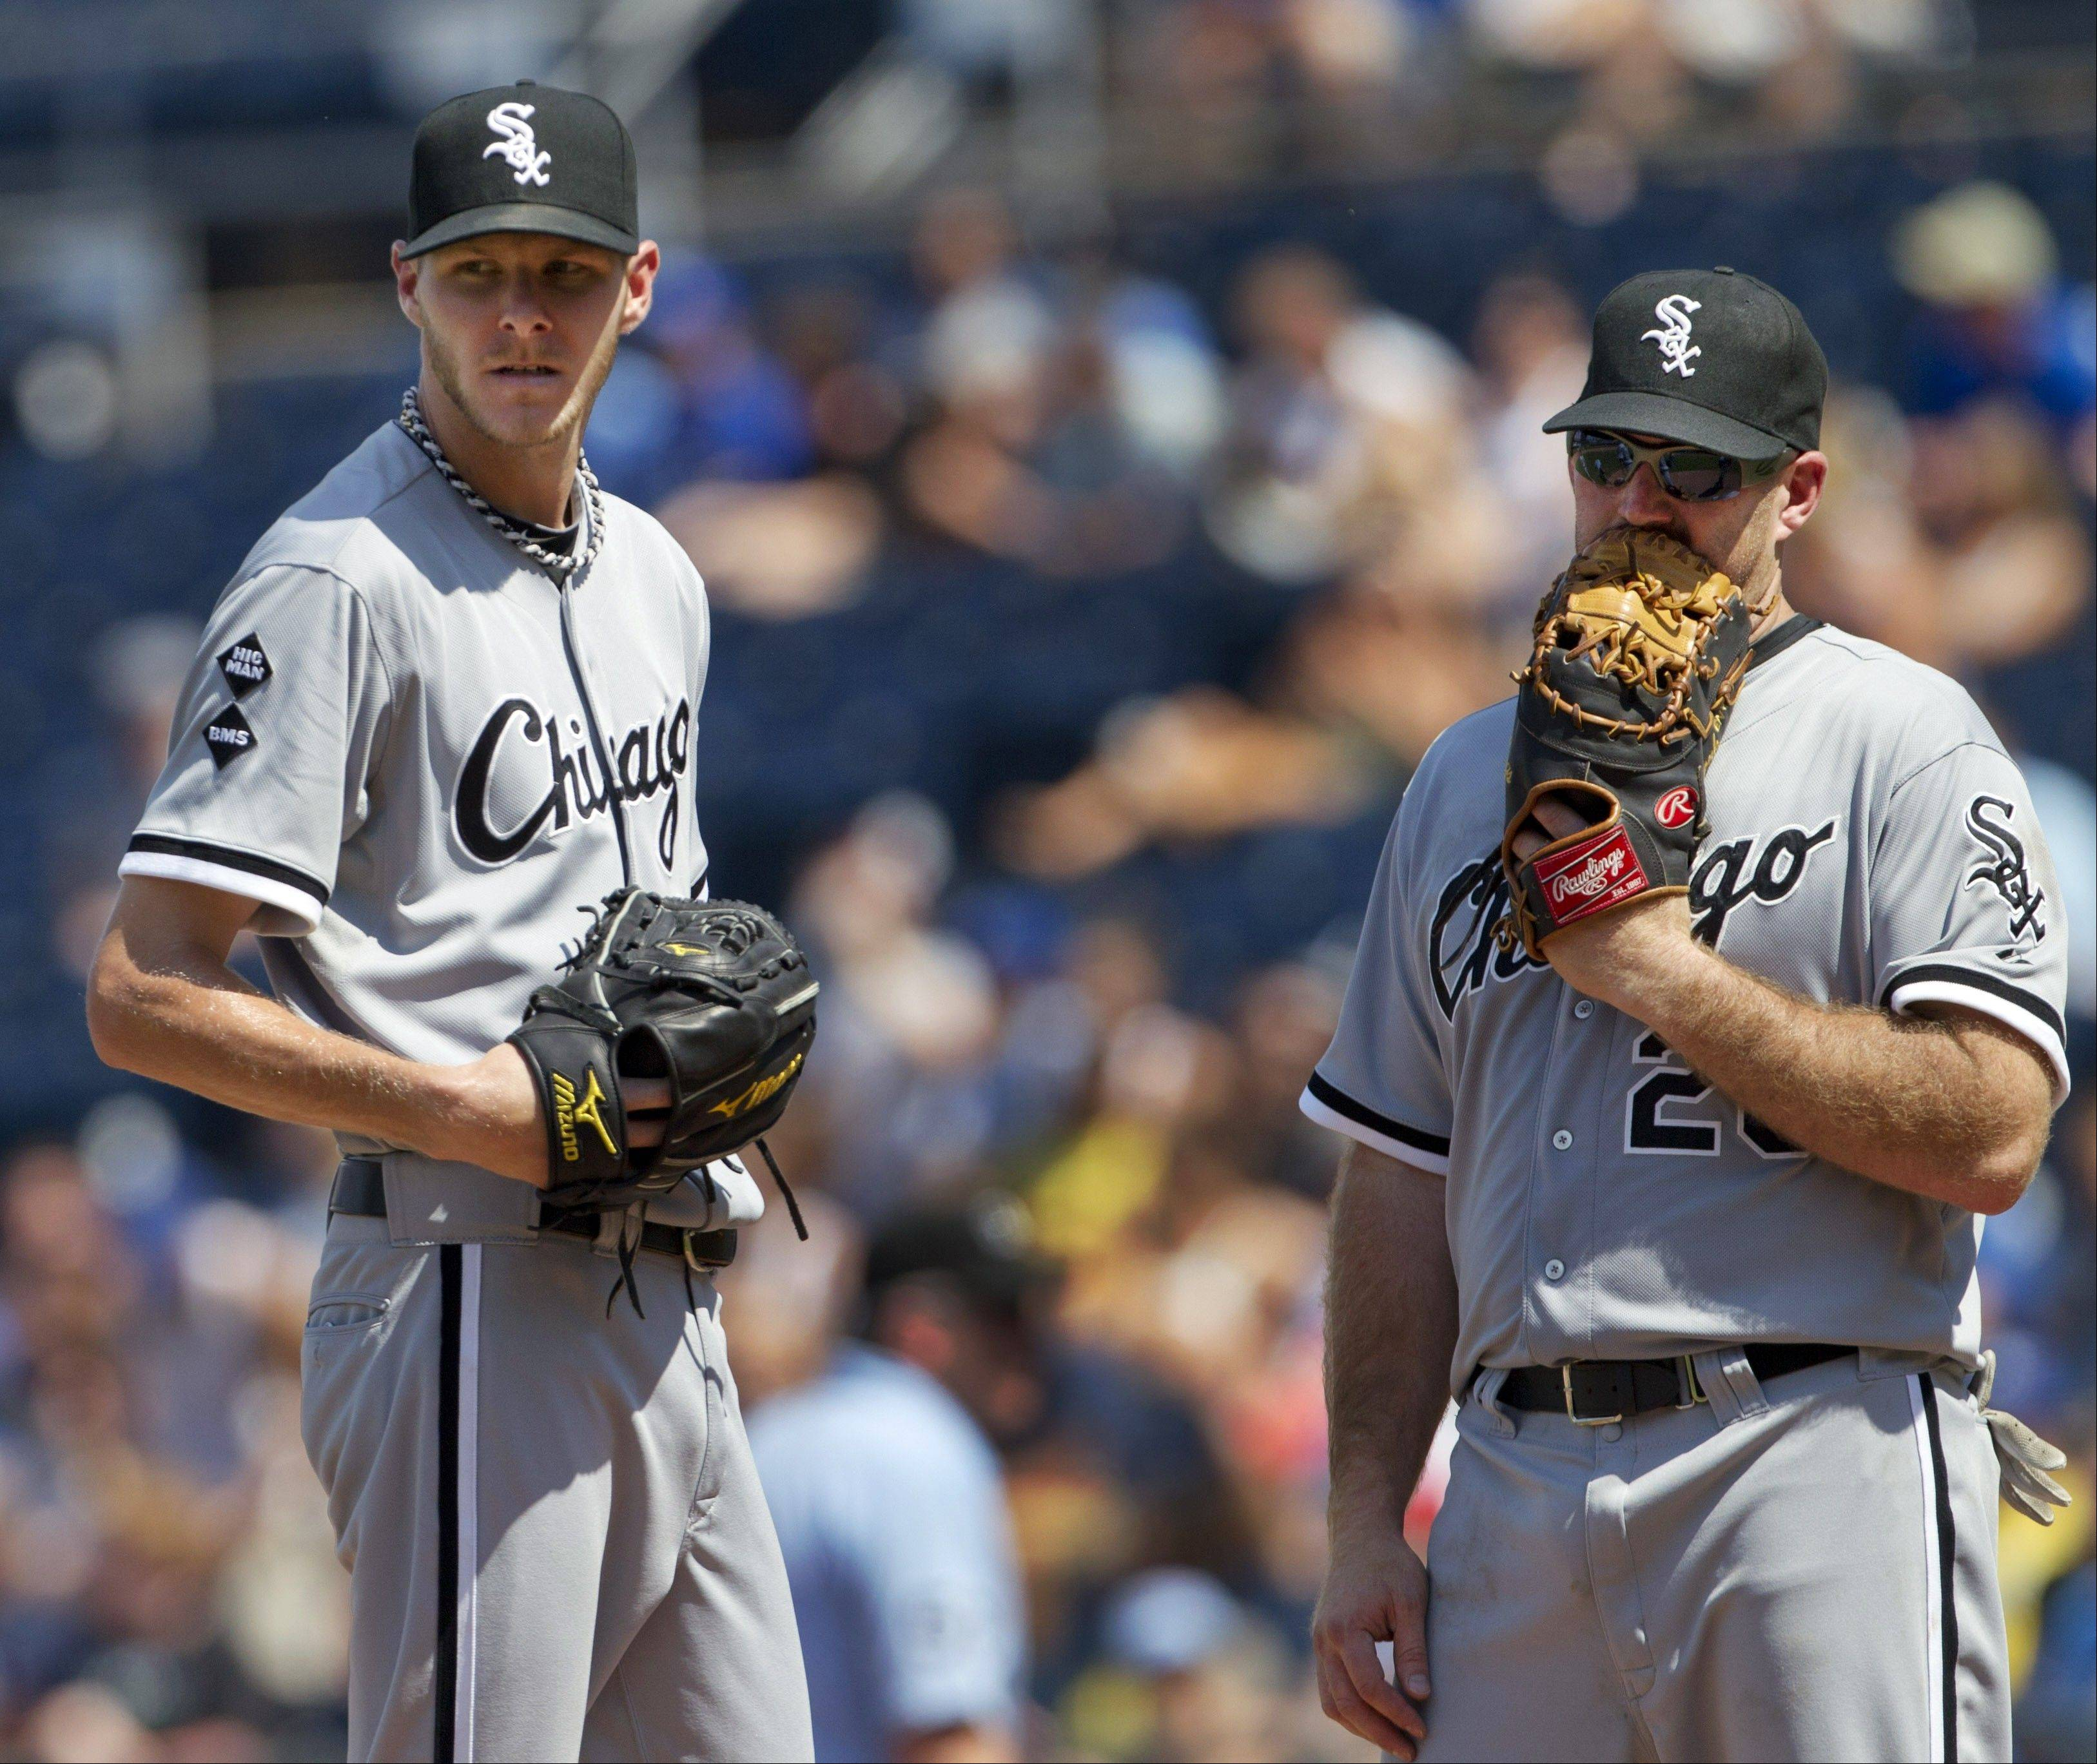 White Sox third baseman Kevin Youkilis talks with starting pitcher Chris Sale during the eighth inning of Sunday's 2-1 victory over the Royals.